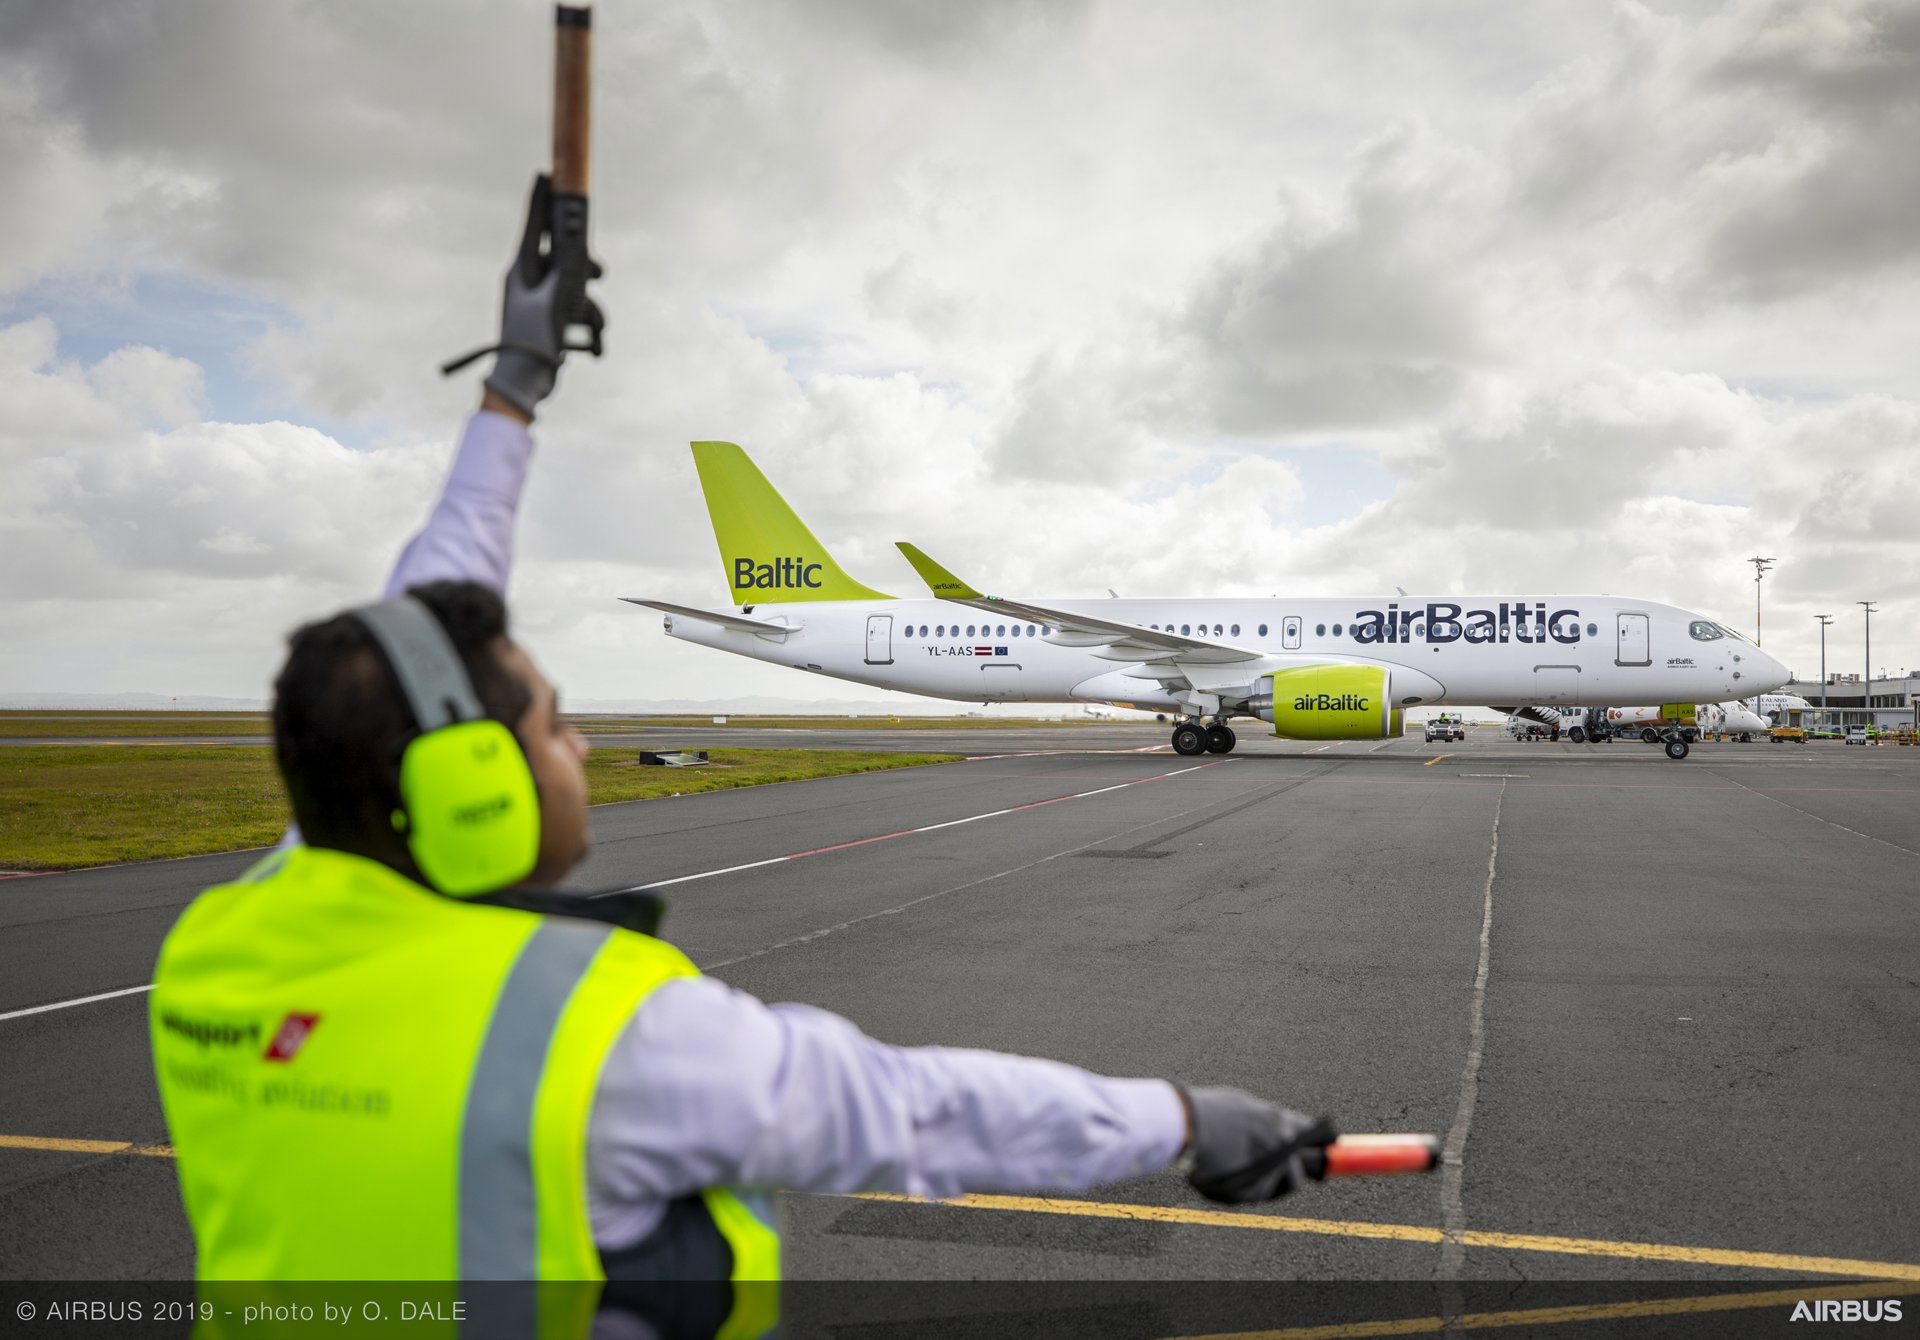 The airBaltic A220-300 used for Airbus' A220 demonstration tour of the Asia-Pacific region taxis during its visit to Auckland, New Zealand